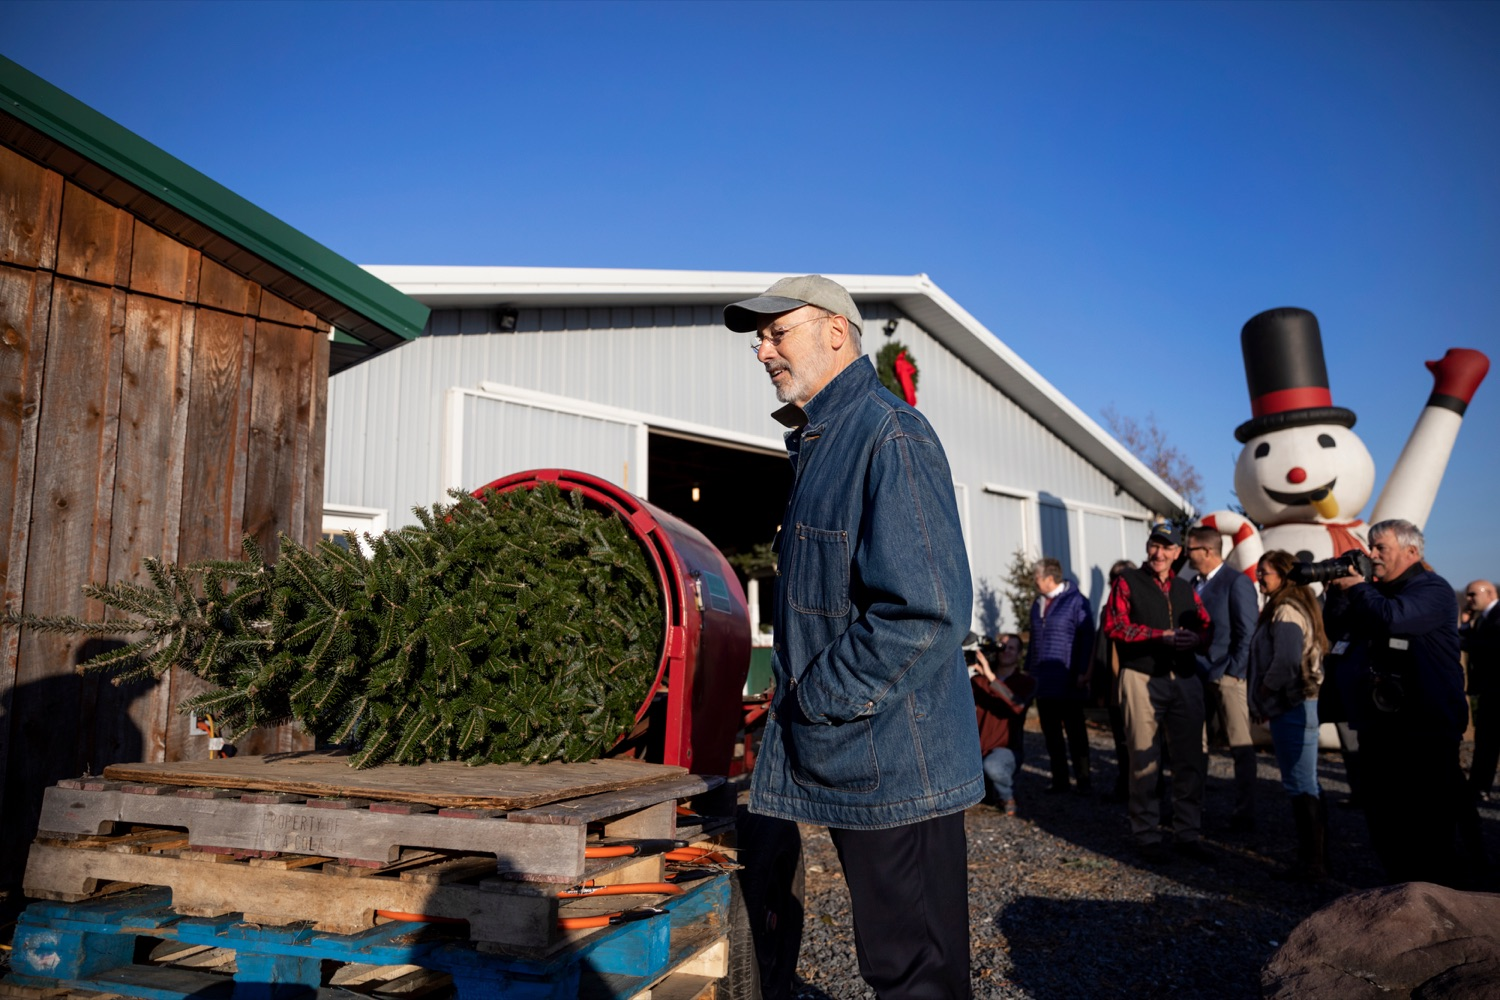 "<a href=""http://filesource.abacast.com/commonwealthofpa/photo/17615_GOV_AGRIC_Christmas_Trees_NK_011.JPG"" target=""_blank"">⇣ Download Photo<br></a>Pennsylvania Governor Tom Wolf checks out a Christmas tree on Monday, November 25, 2019."